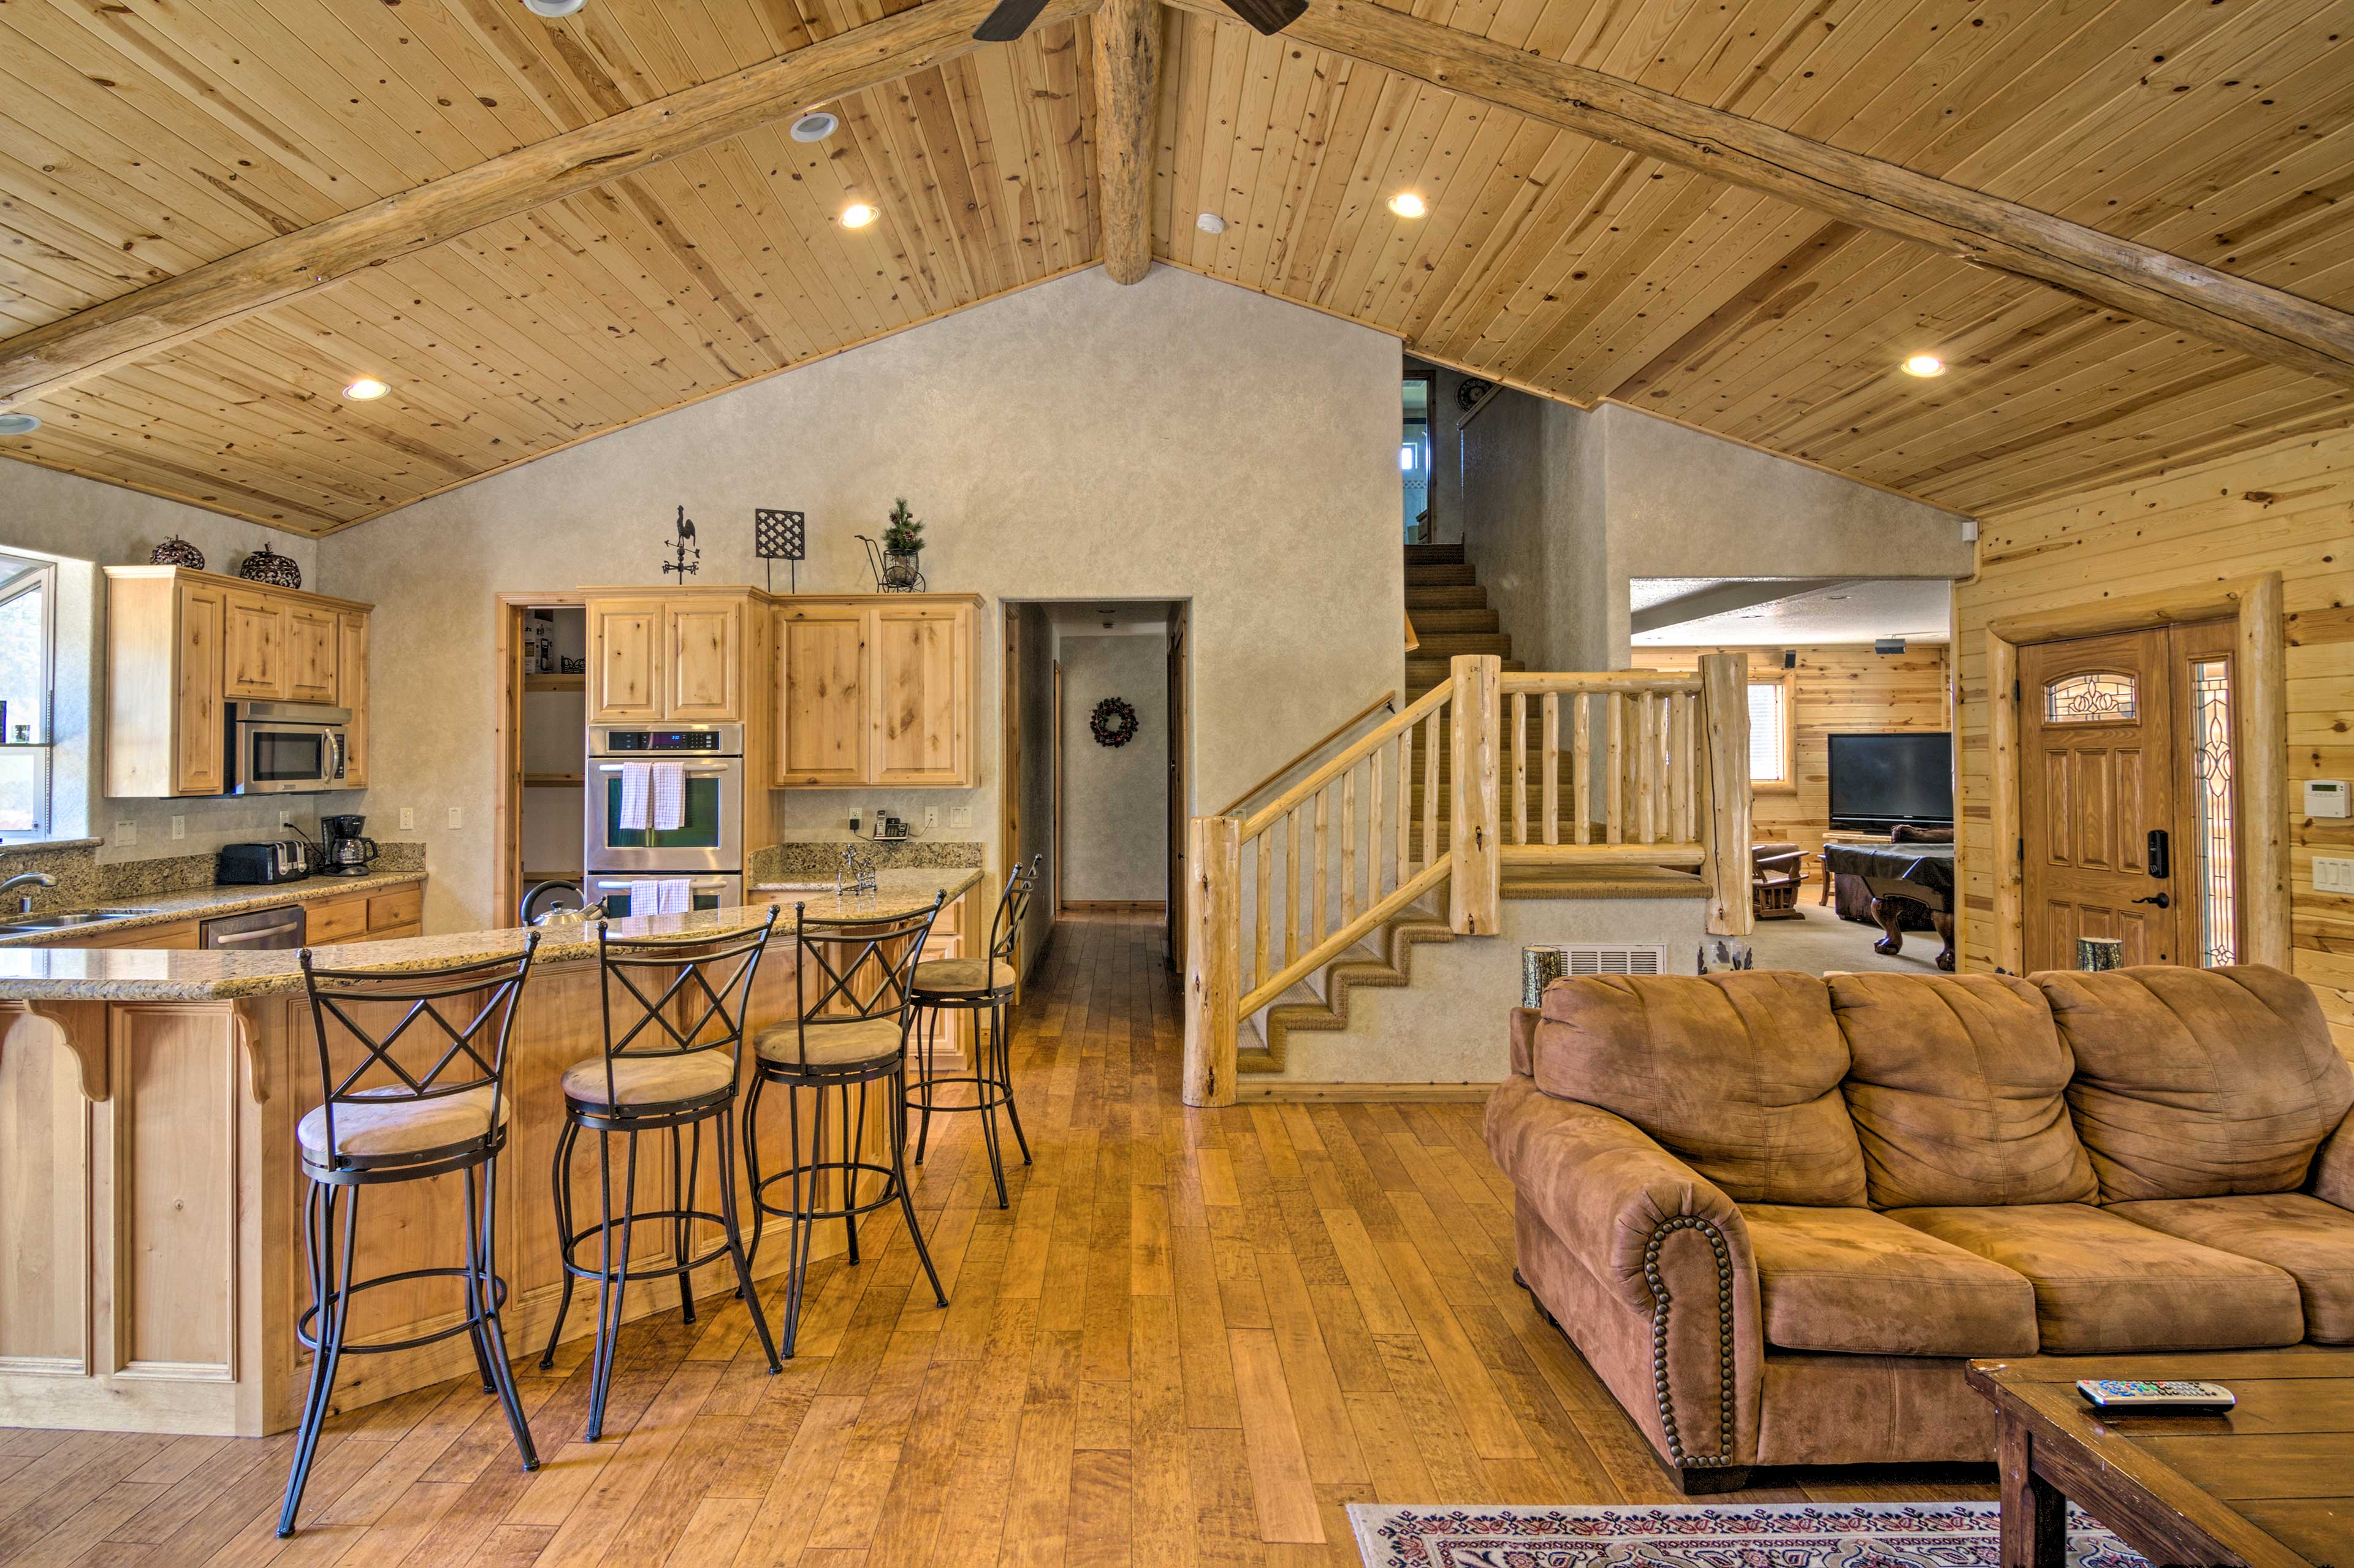 Relax in the cozy living room or hop on over to the kitchen for food.